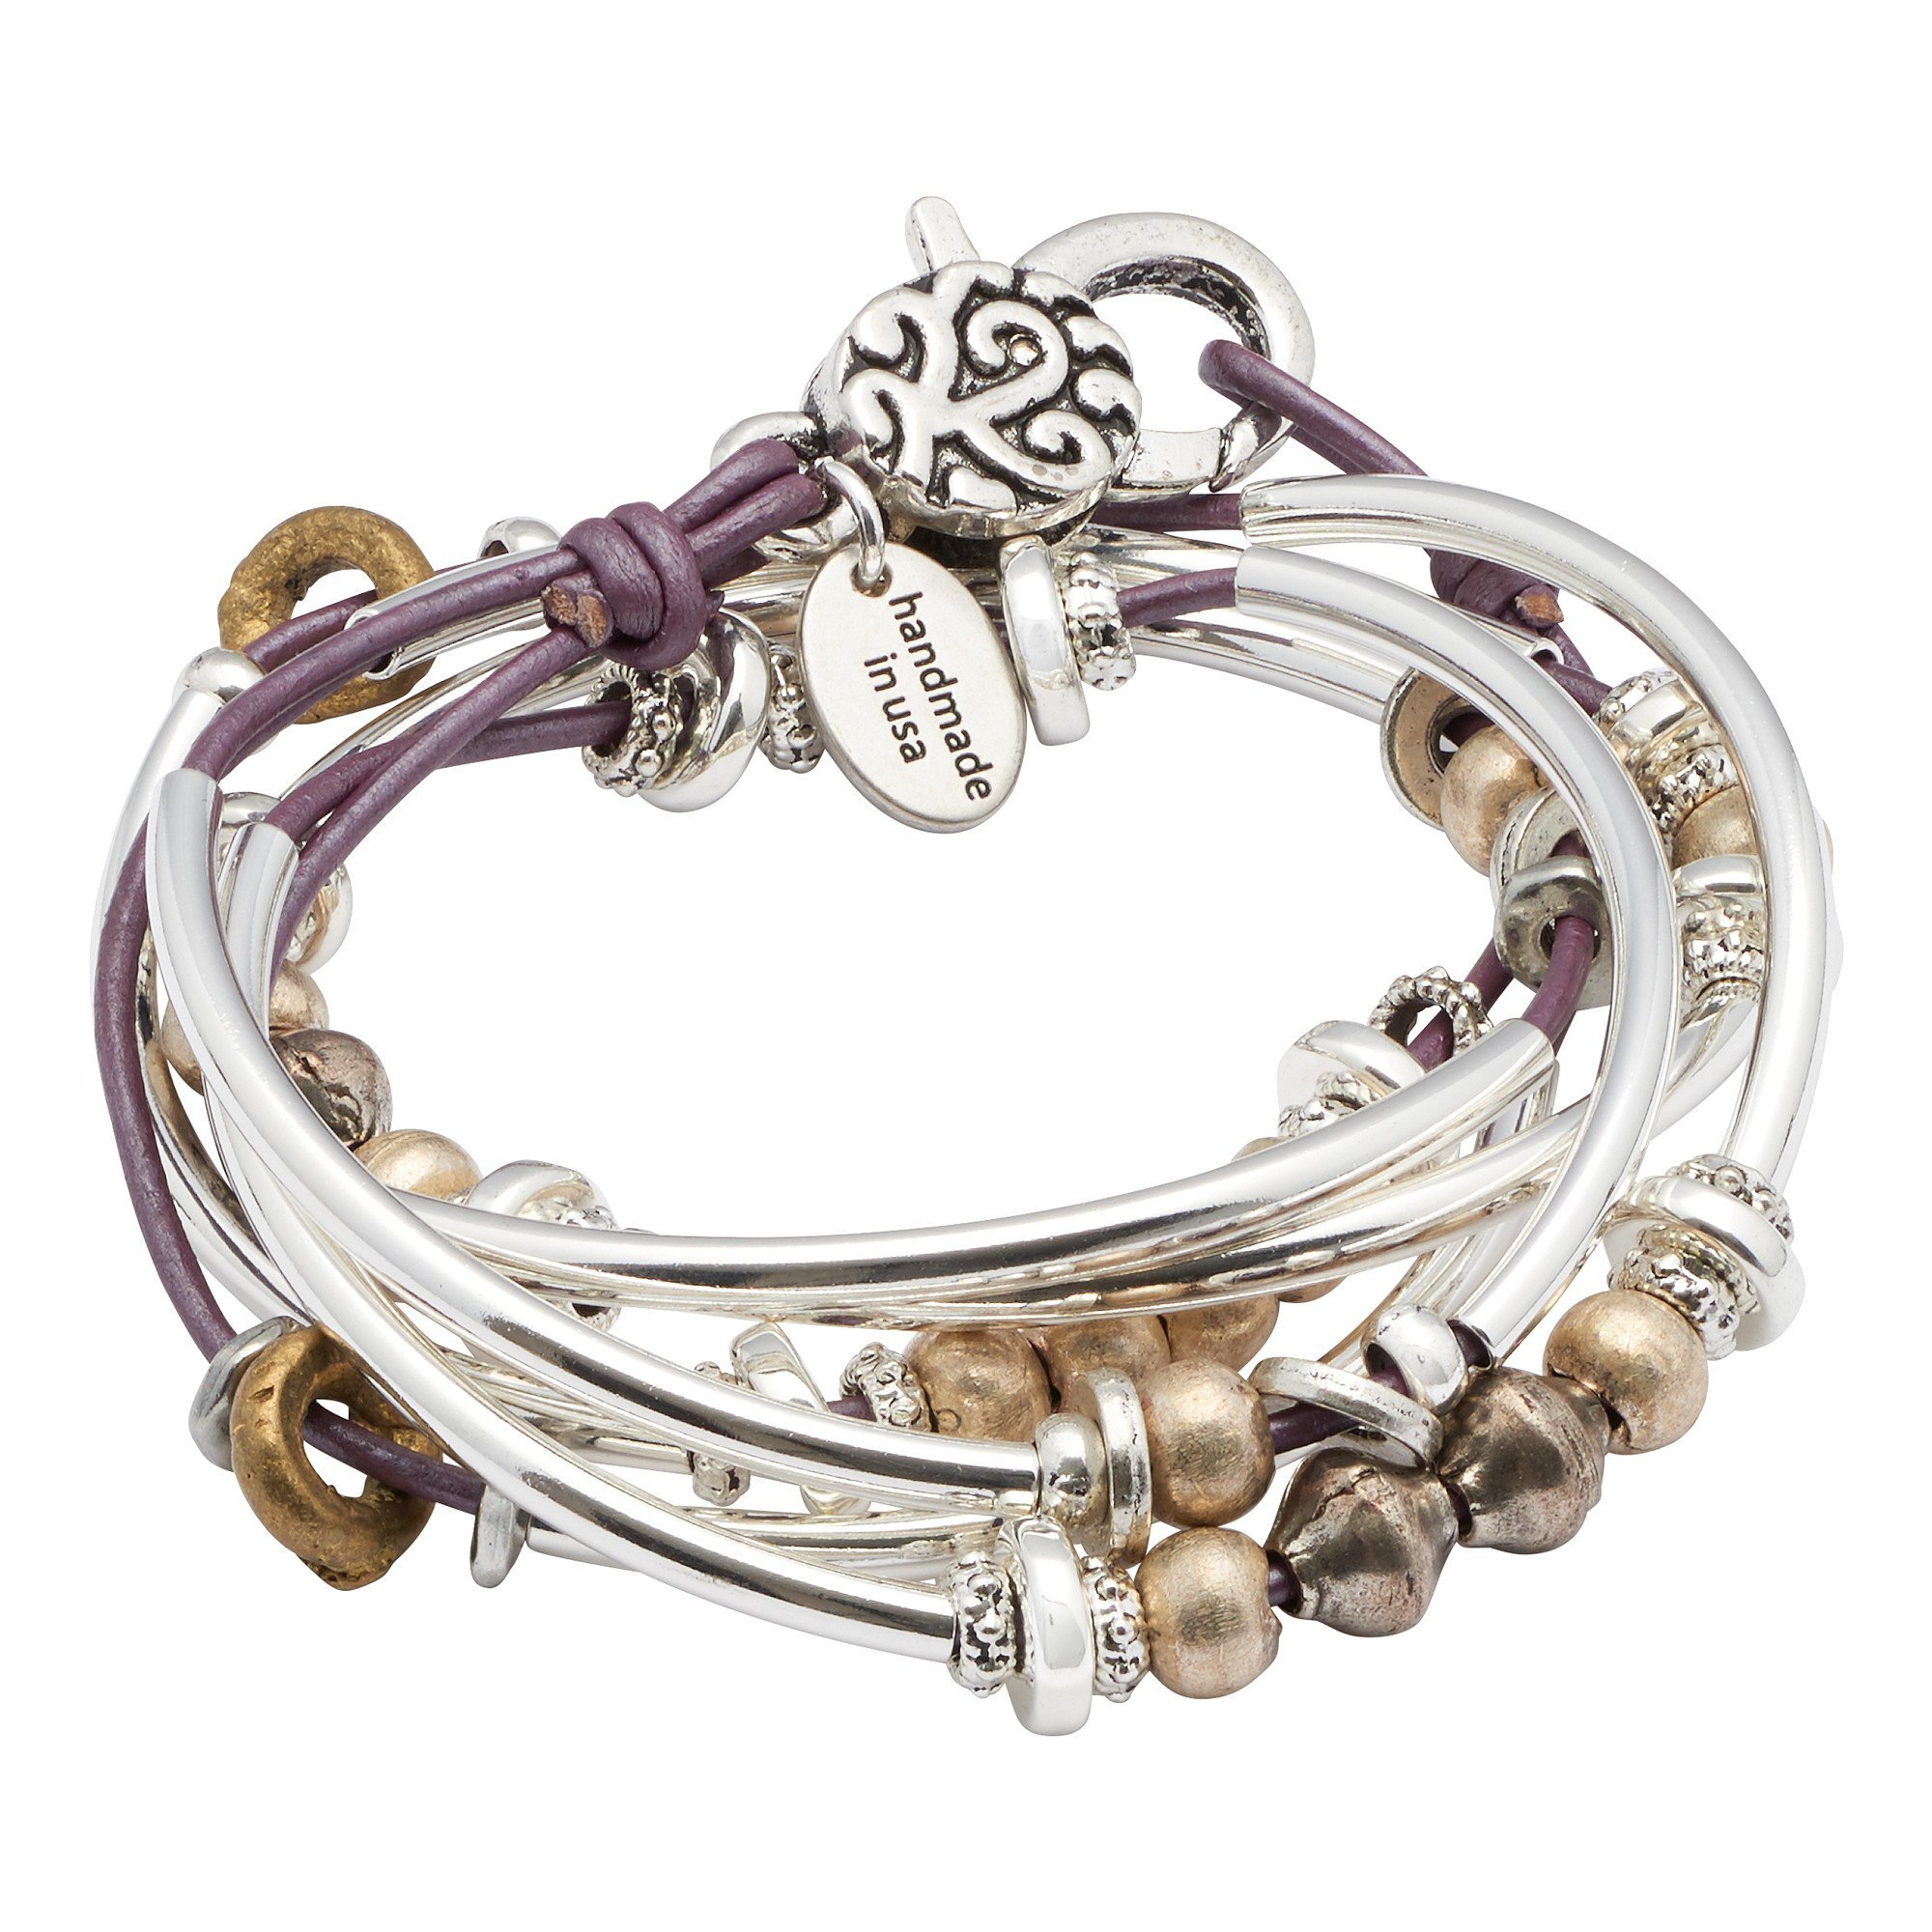 Bella Silverplate XLarge Bracelet Necklace with Metallic Berry Leather Wrap by Lizzy James